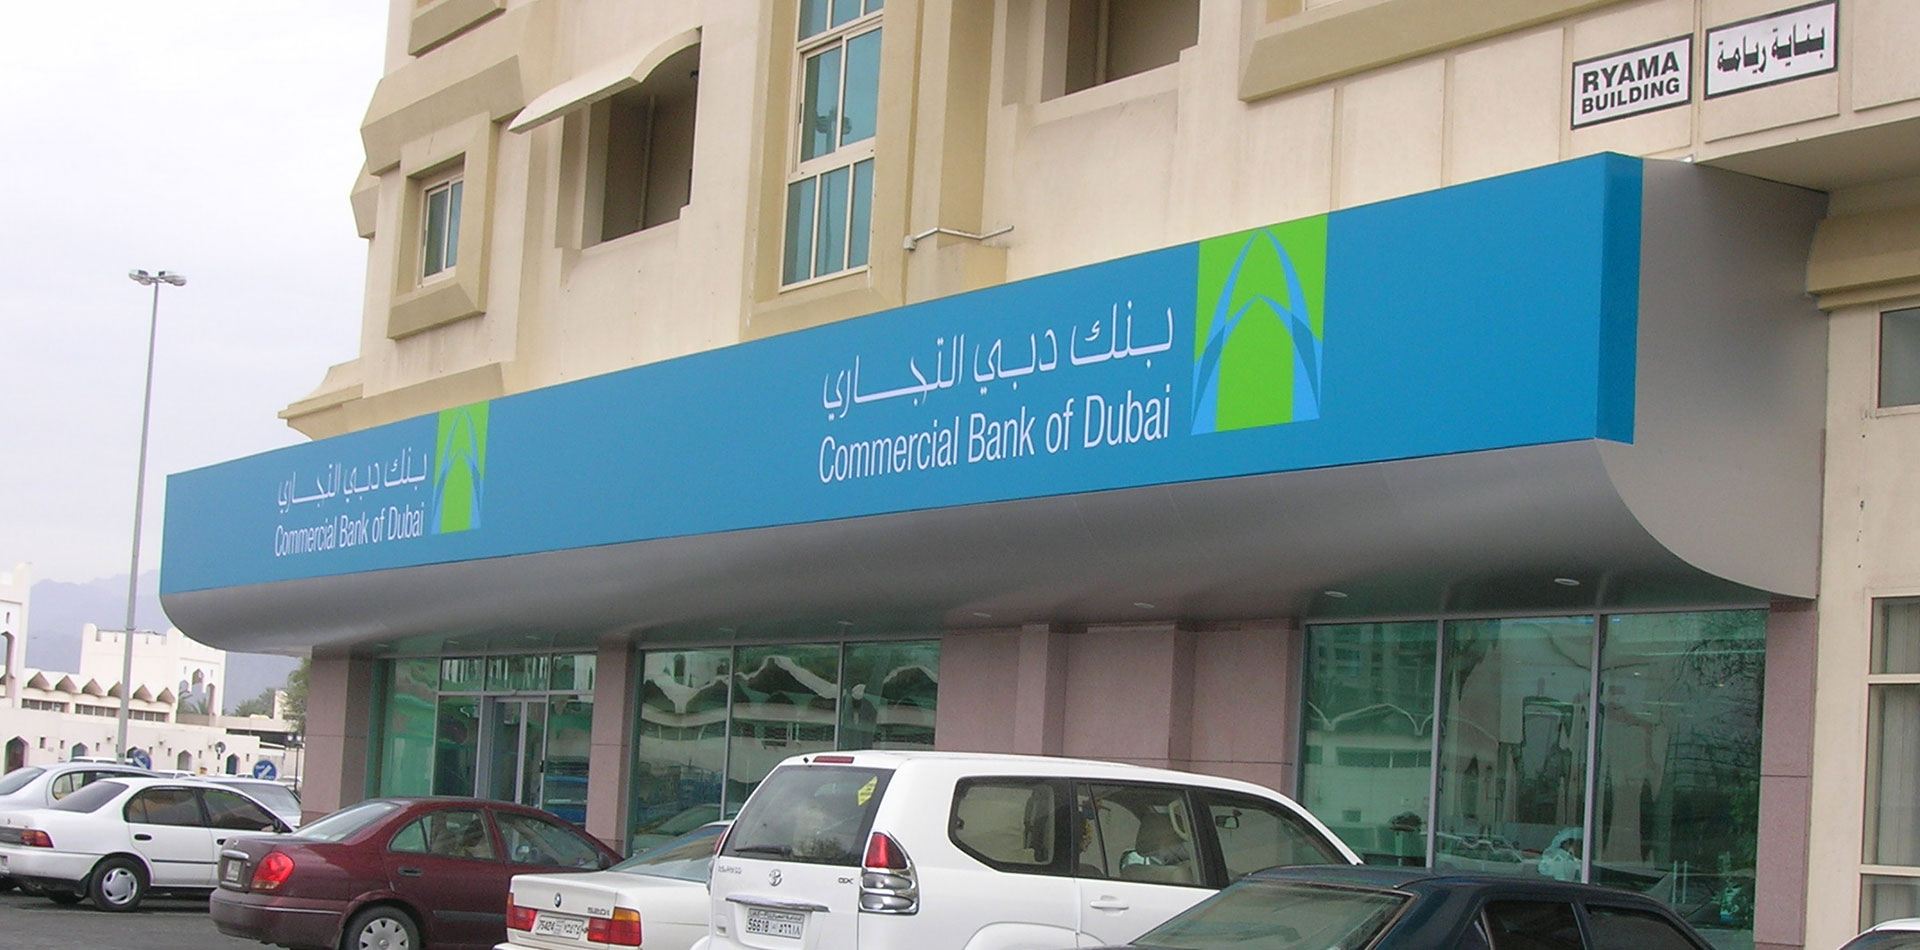 Outdoor Signage of Commercial Bank Dubai